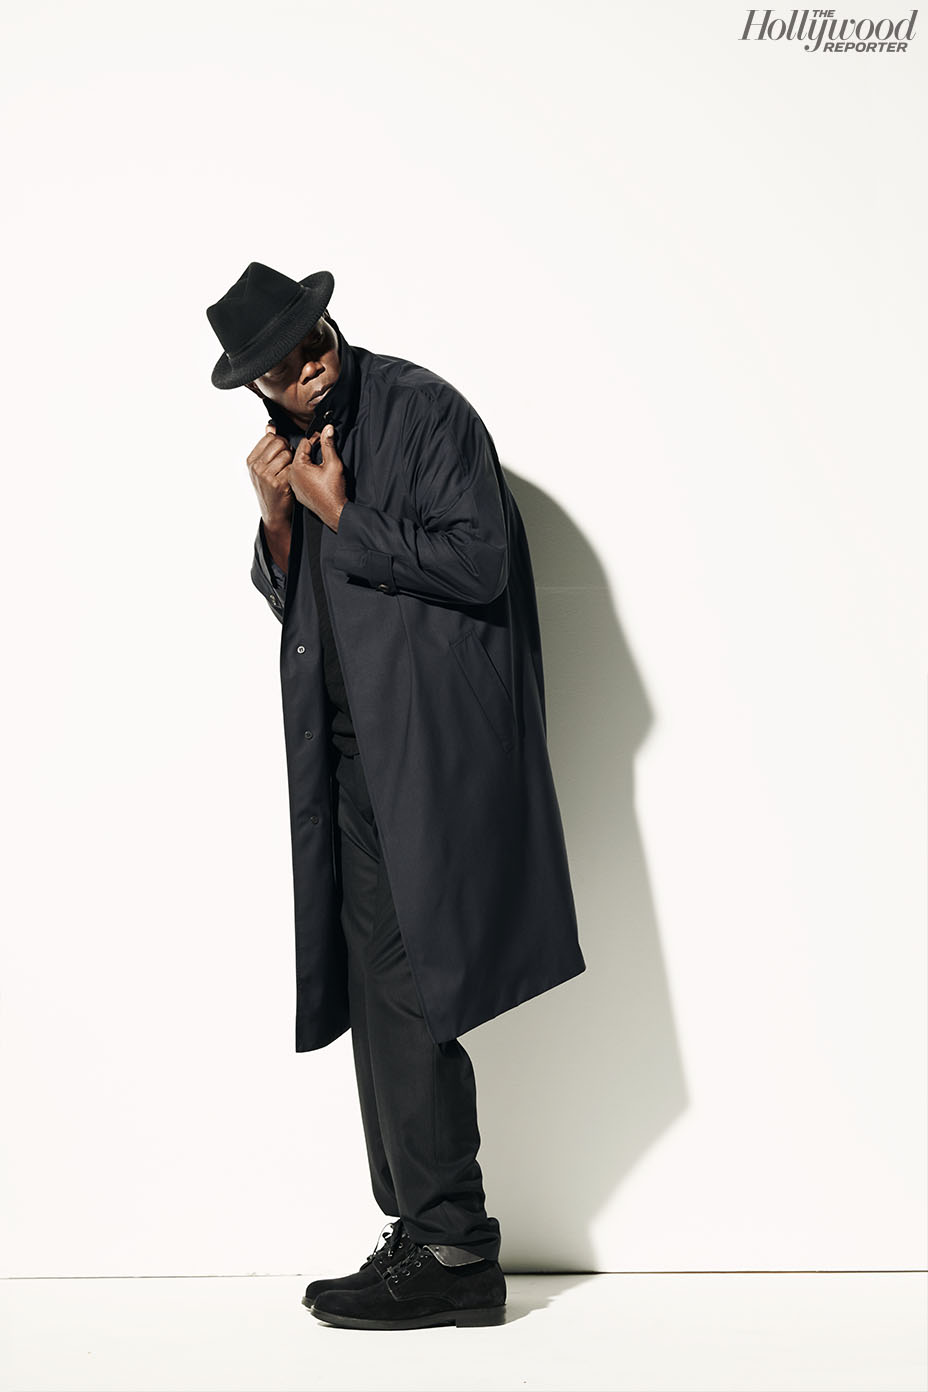 THE HOLLYWOOD REPORTER JANUARY 2019 SAMUEL L JACKSON TRENCH COAT.jpg